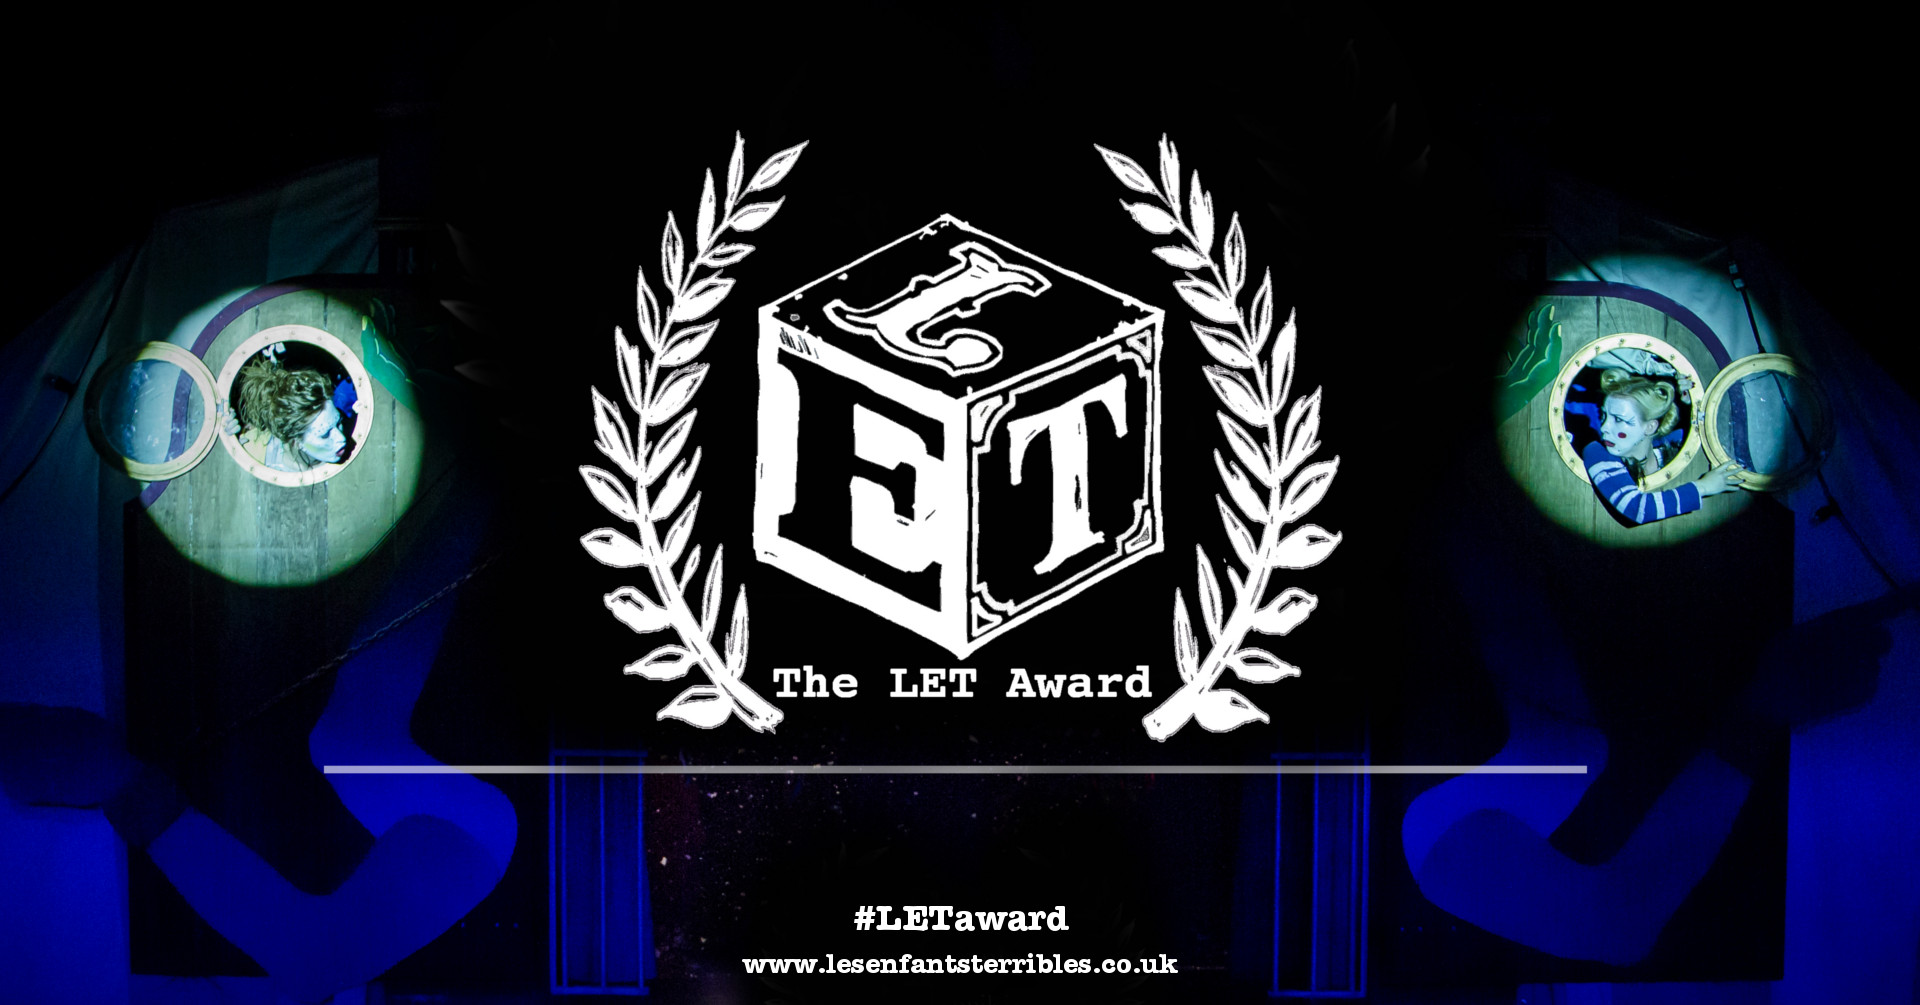 LET award event image